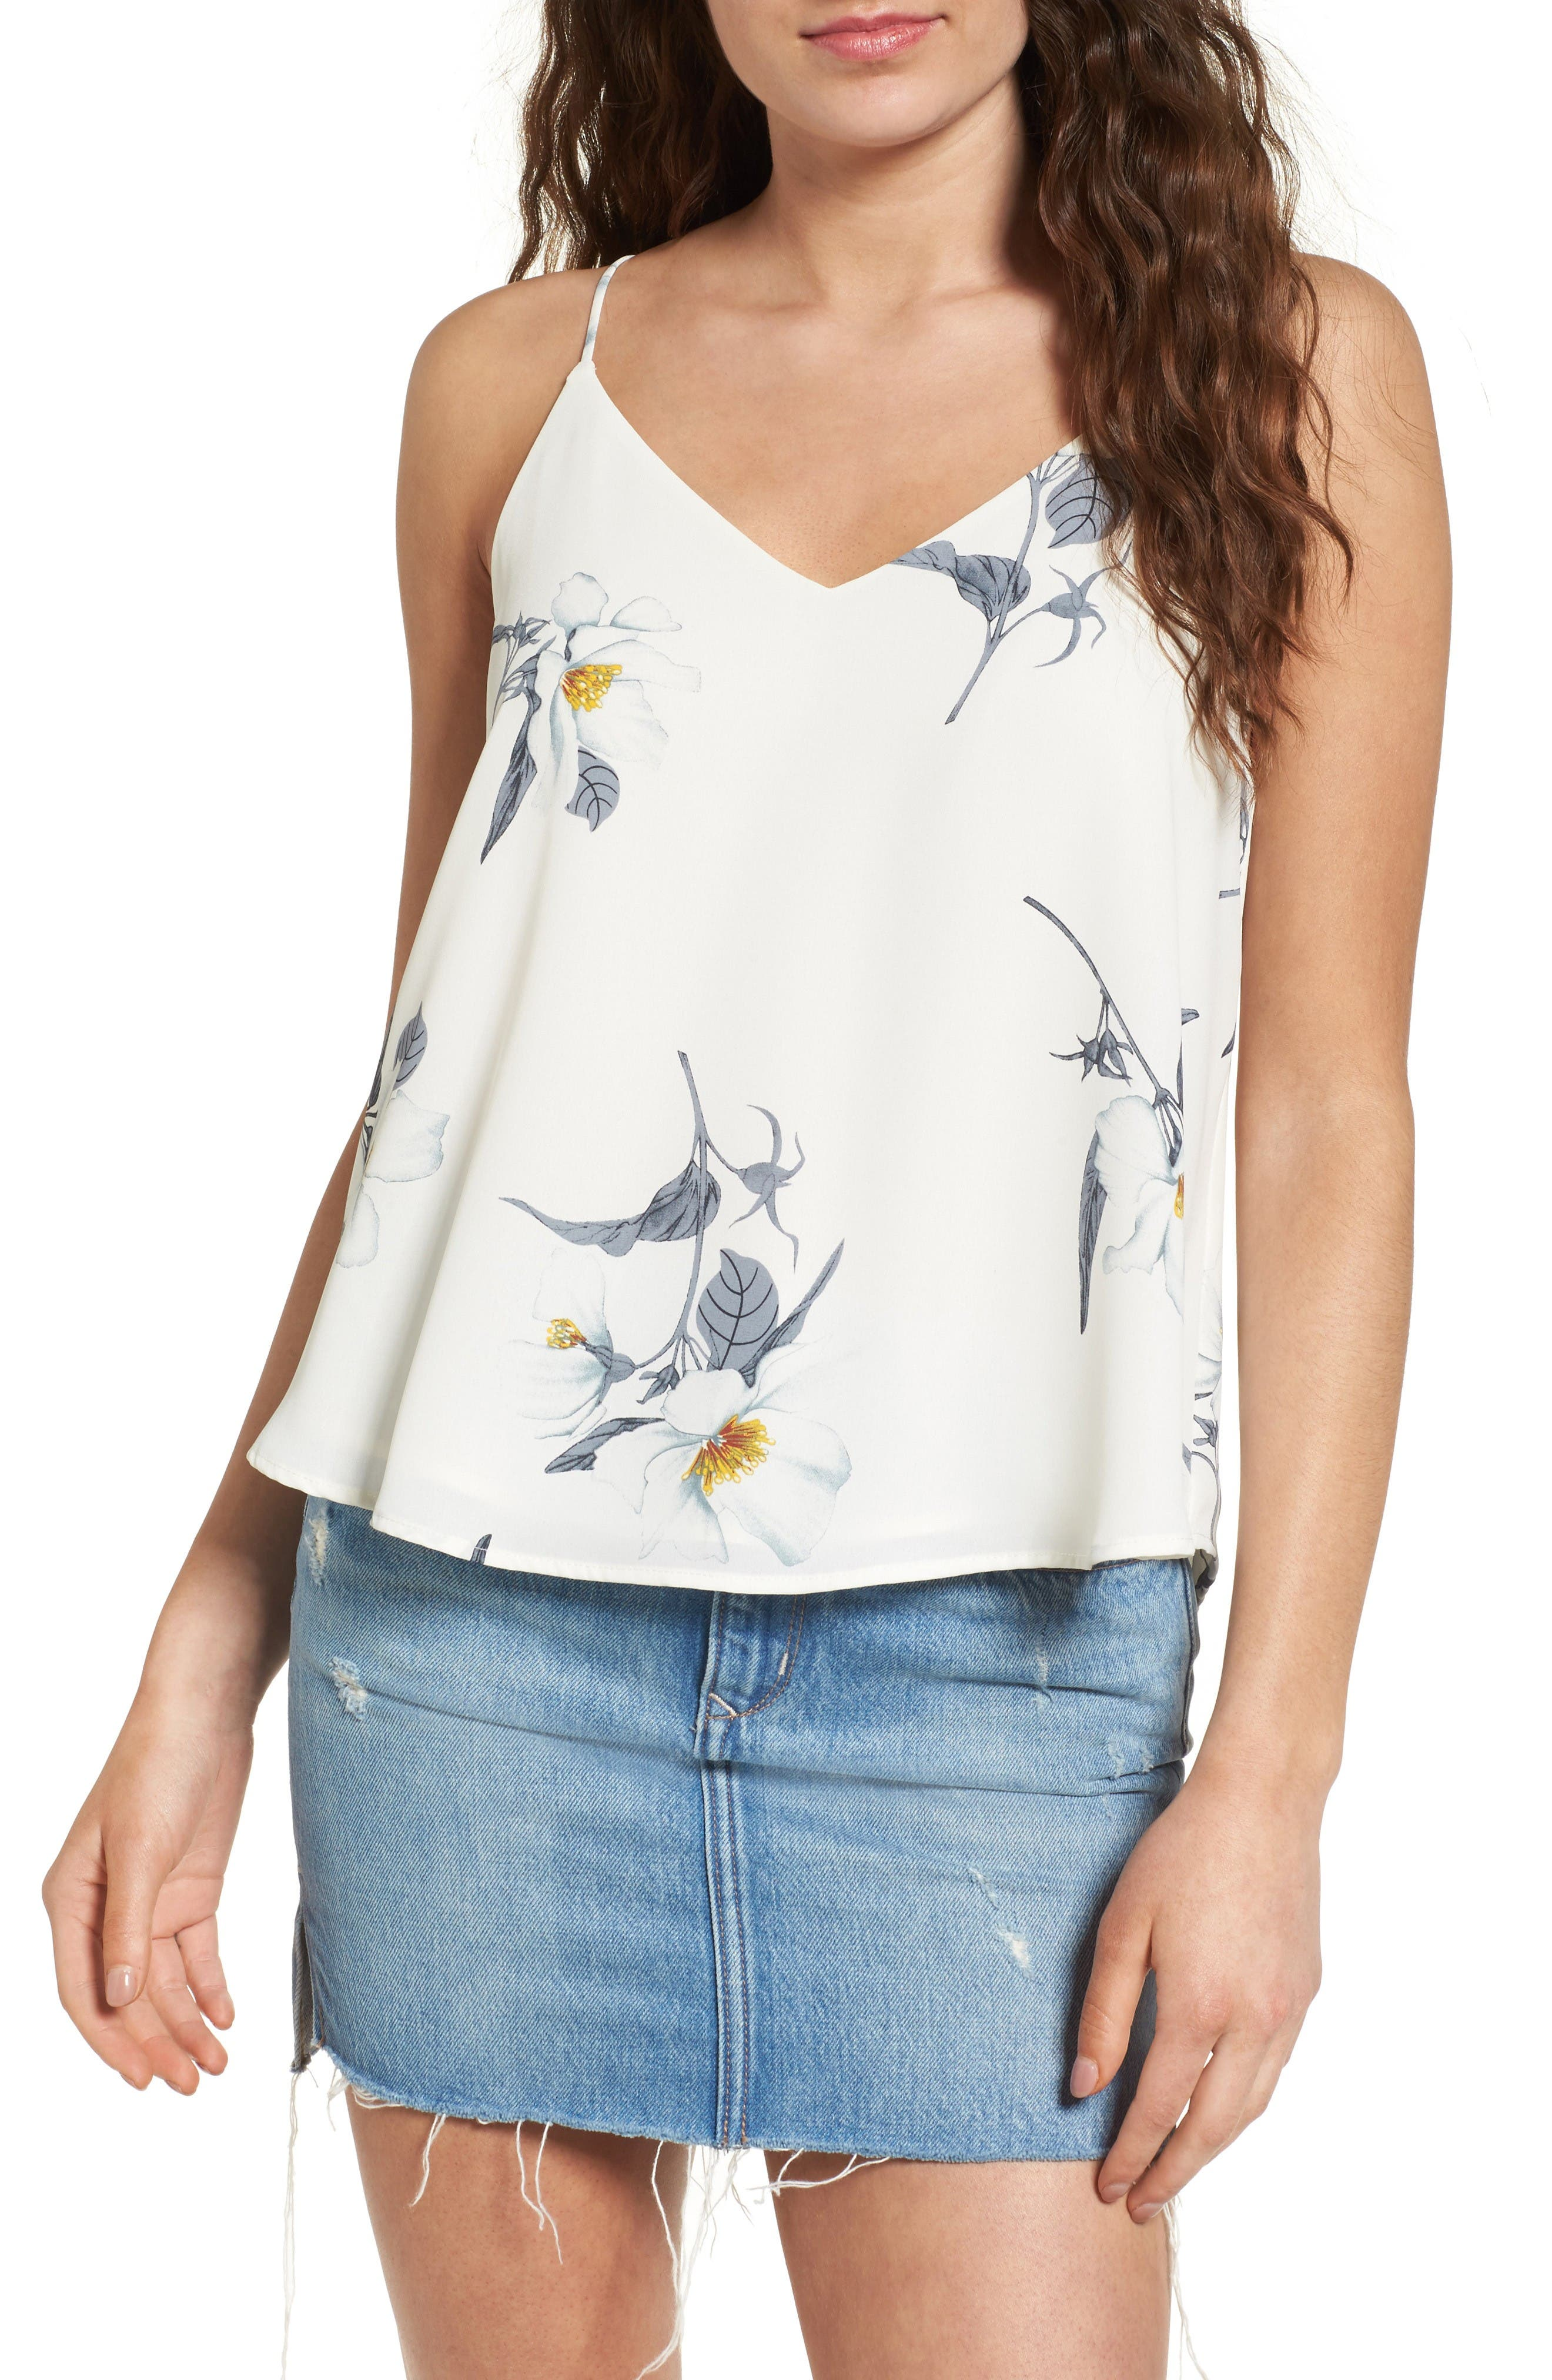 Alternate Image 1 Selected - ASTR the Label Lace-Up Camisole